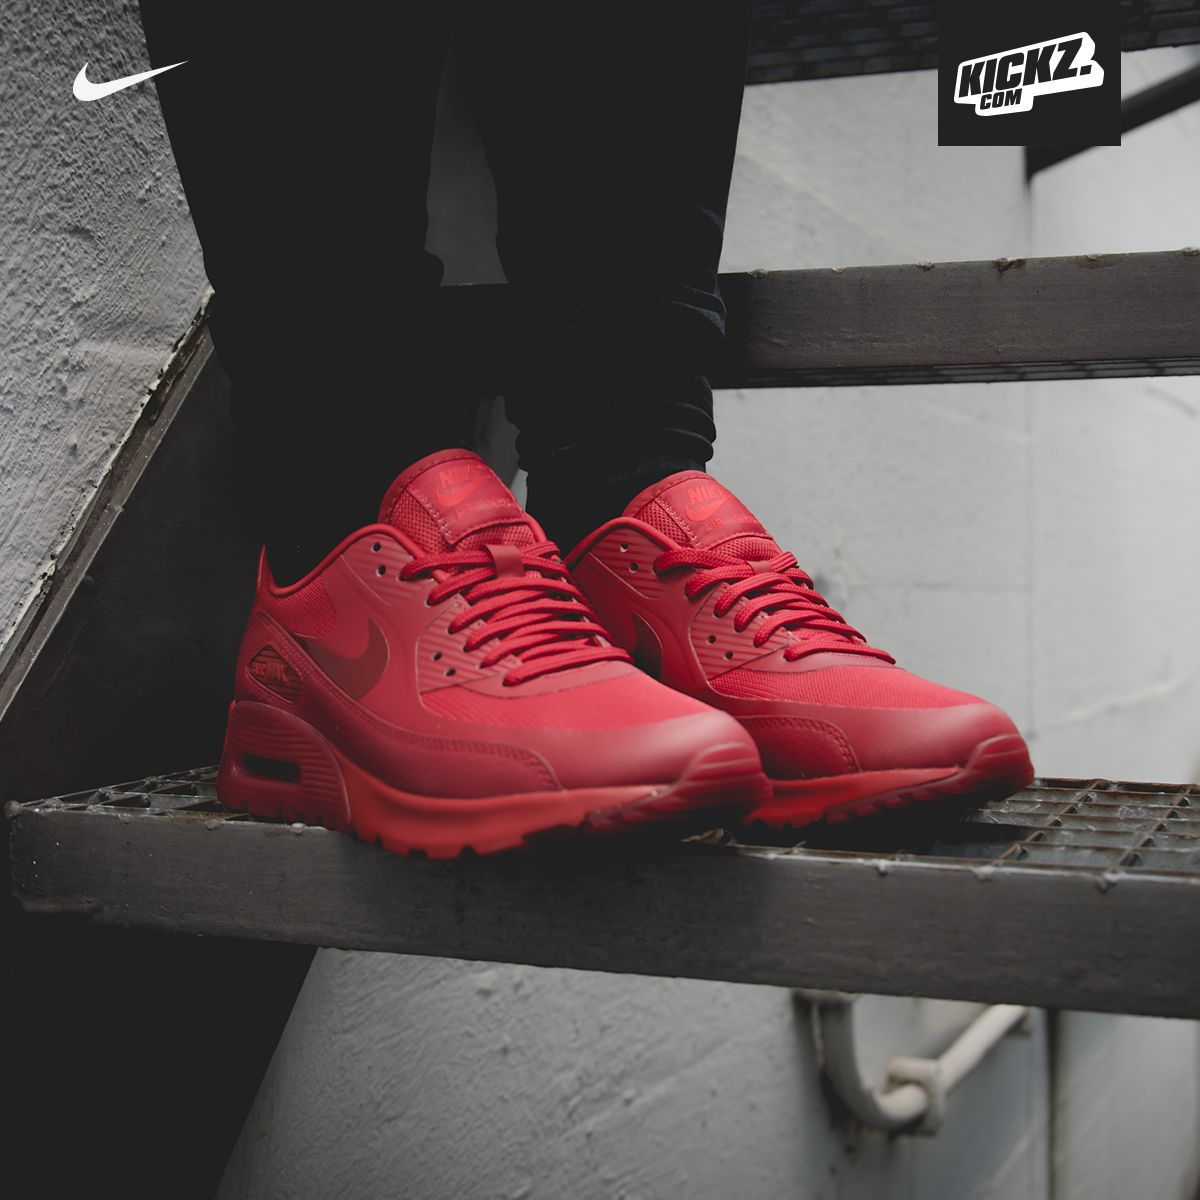 Ladies, are you ready for the triple red power? Nike Air